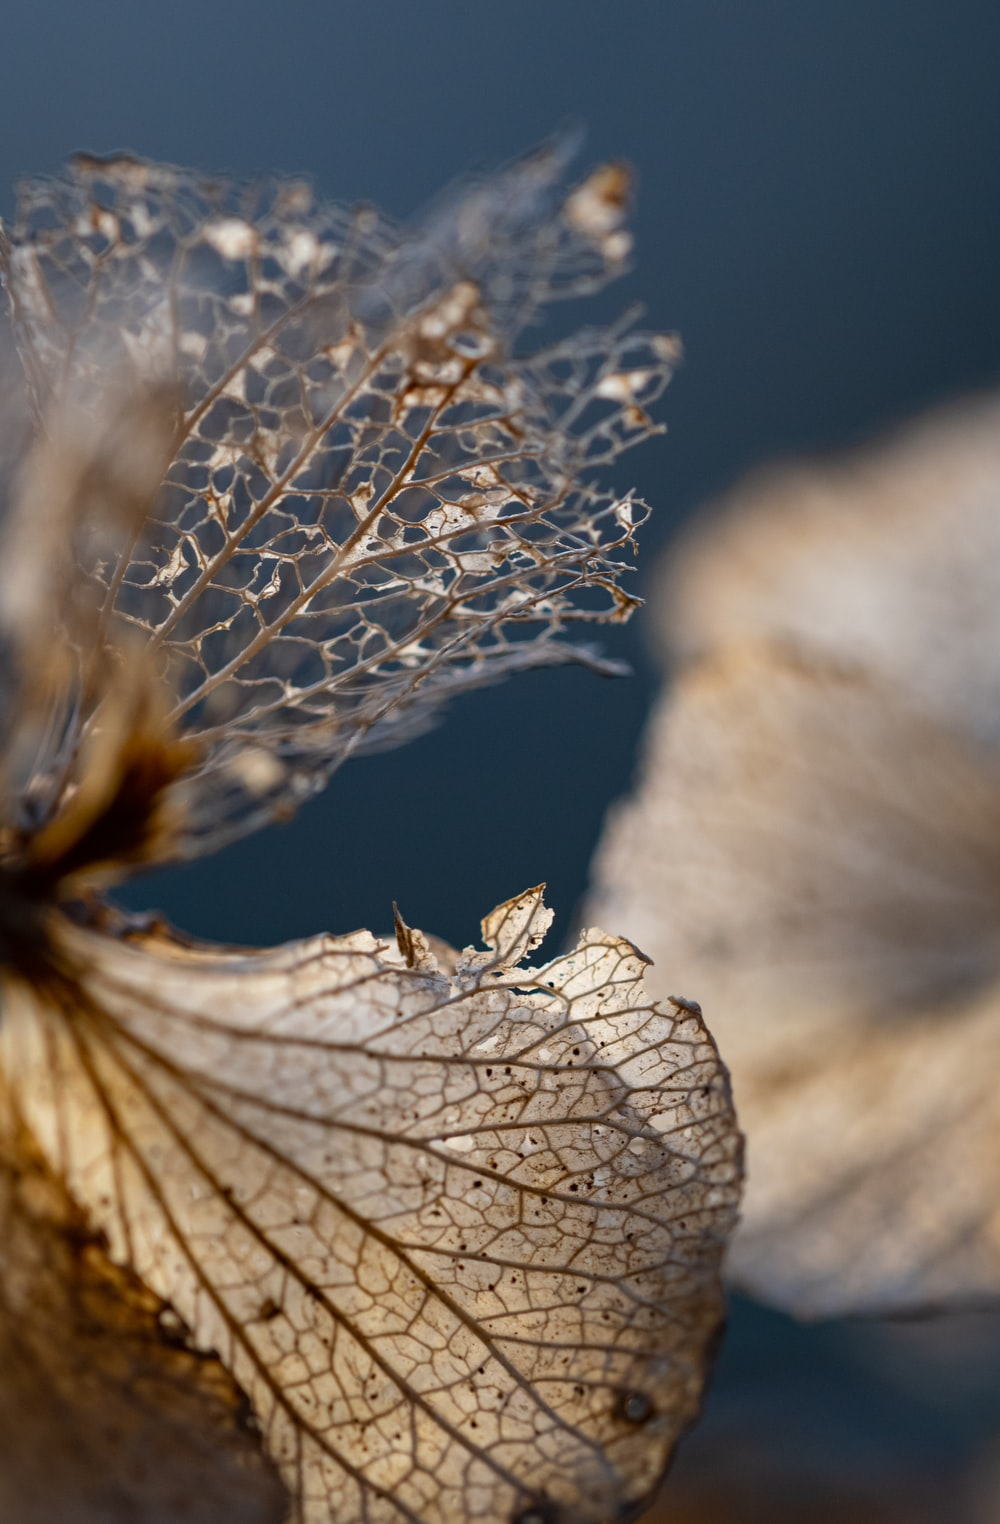 white and brown leaf in close up photography